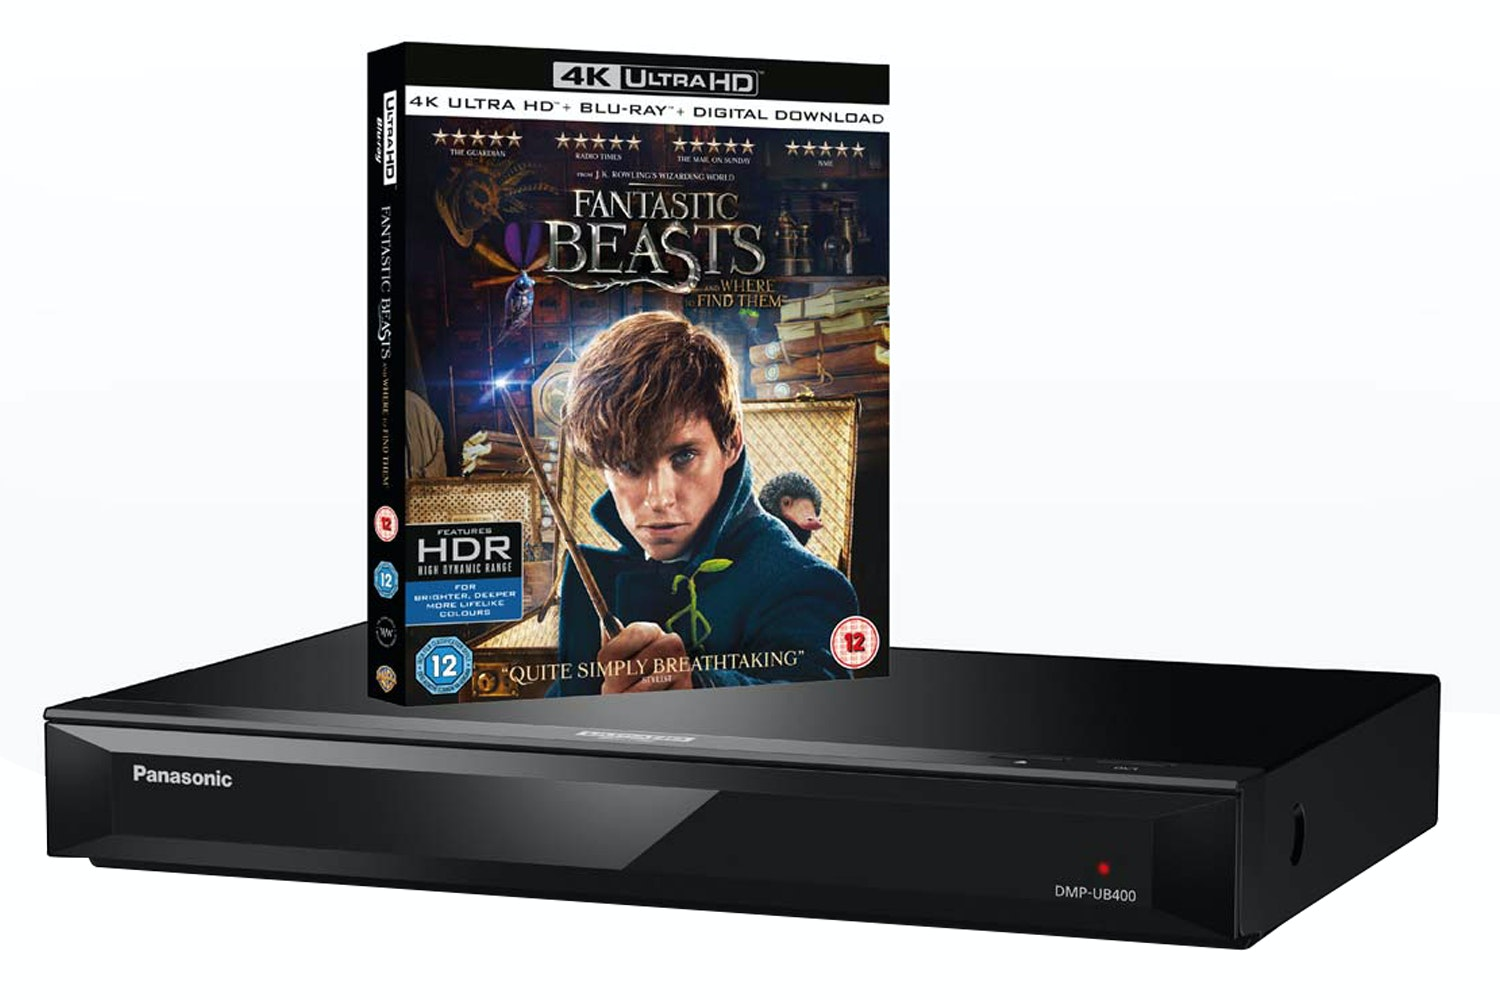 Panasonic Smart 3D 4K Ultra HD Blu-ray Player | DMP-UB400EBK